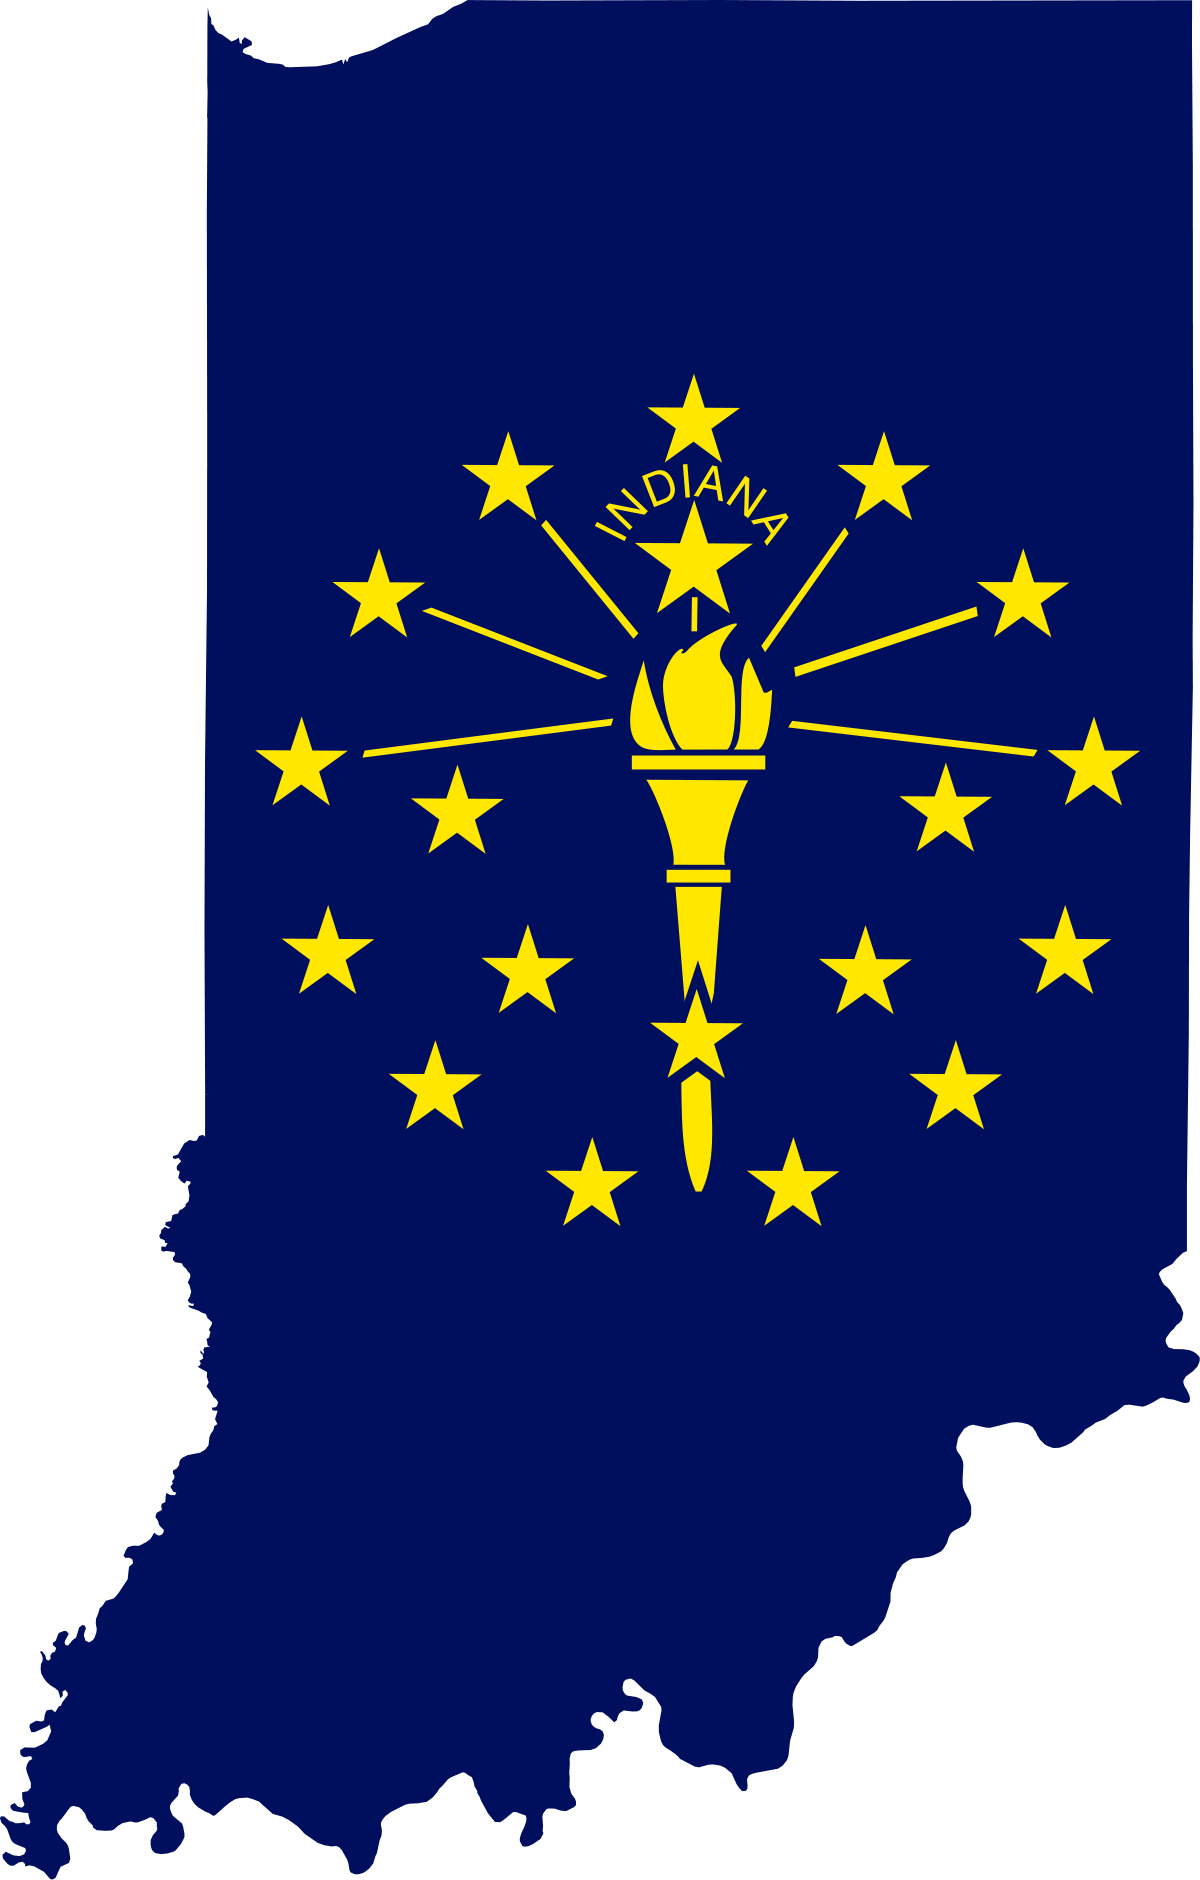 File:Flag map of Indiana.svg.